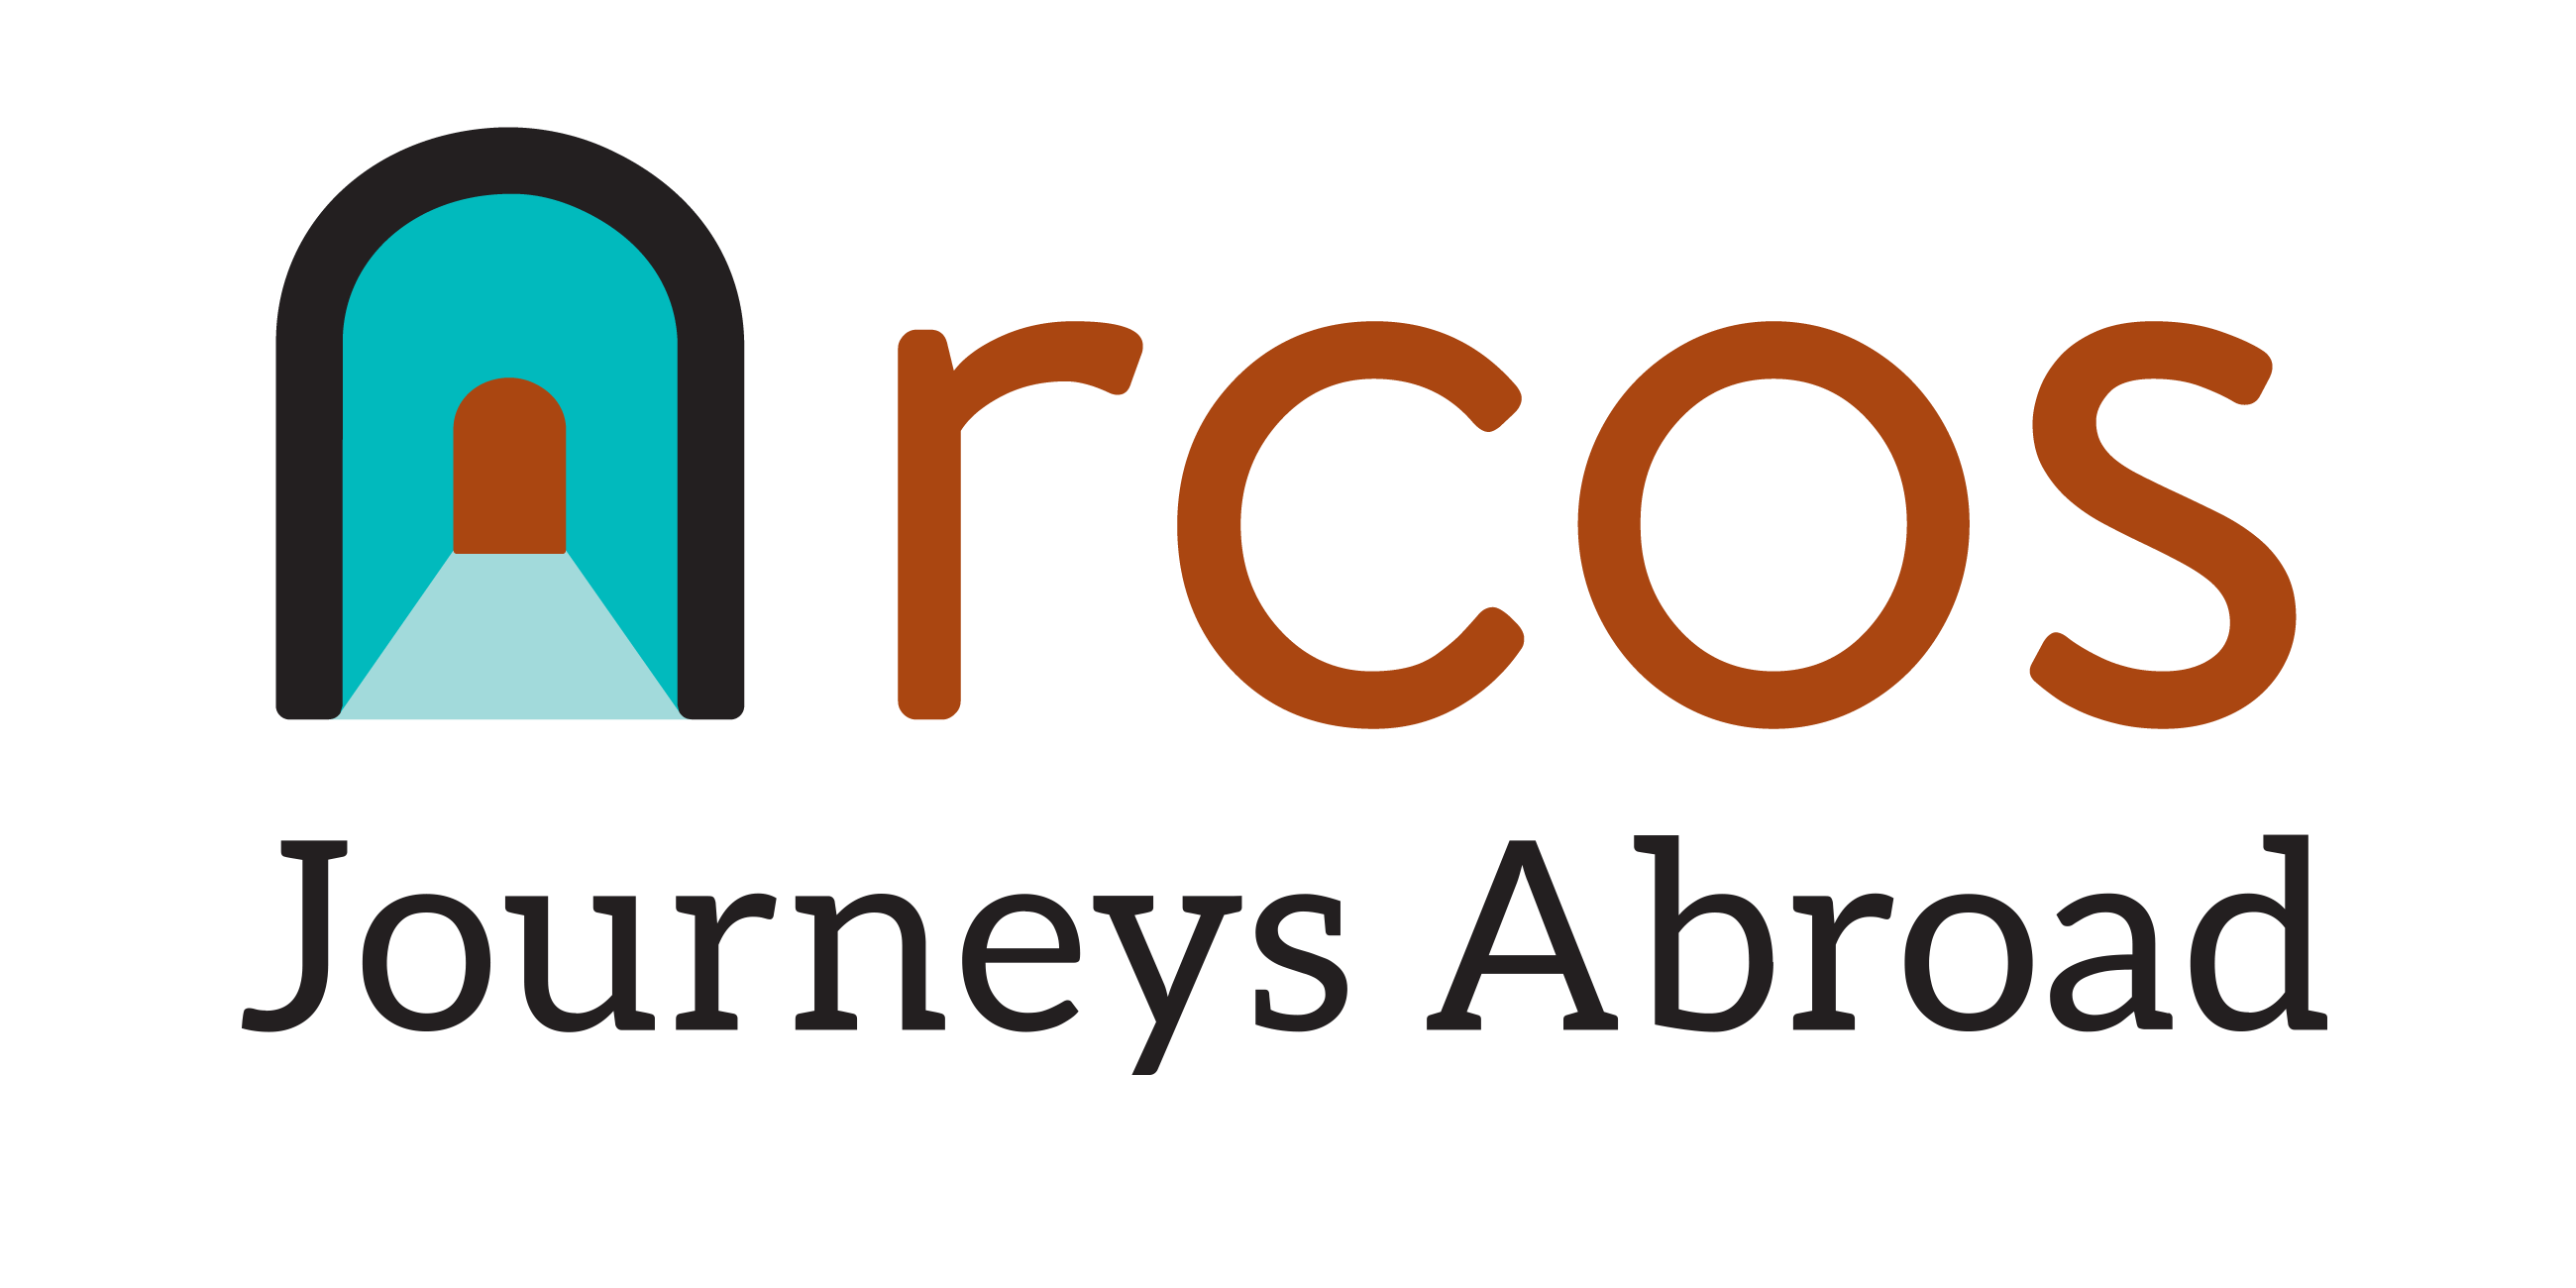 Arcos Journeys: Spanish Language & Mexican Culture